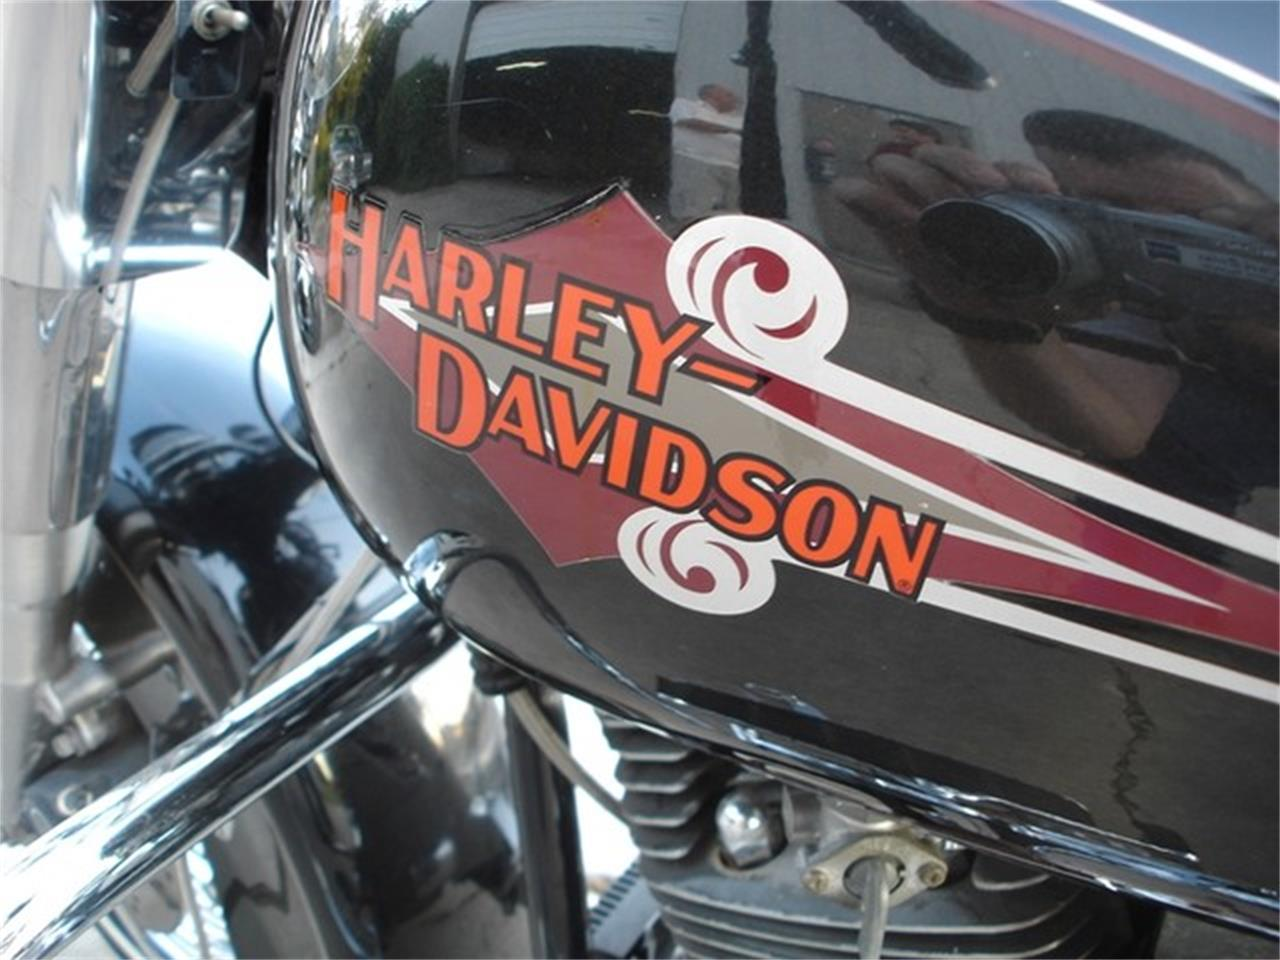 1990 Harley-Davidson Motorcycle for sale in Liberty Hill, TX – photo 16